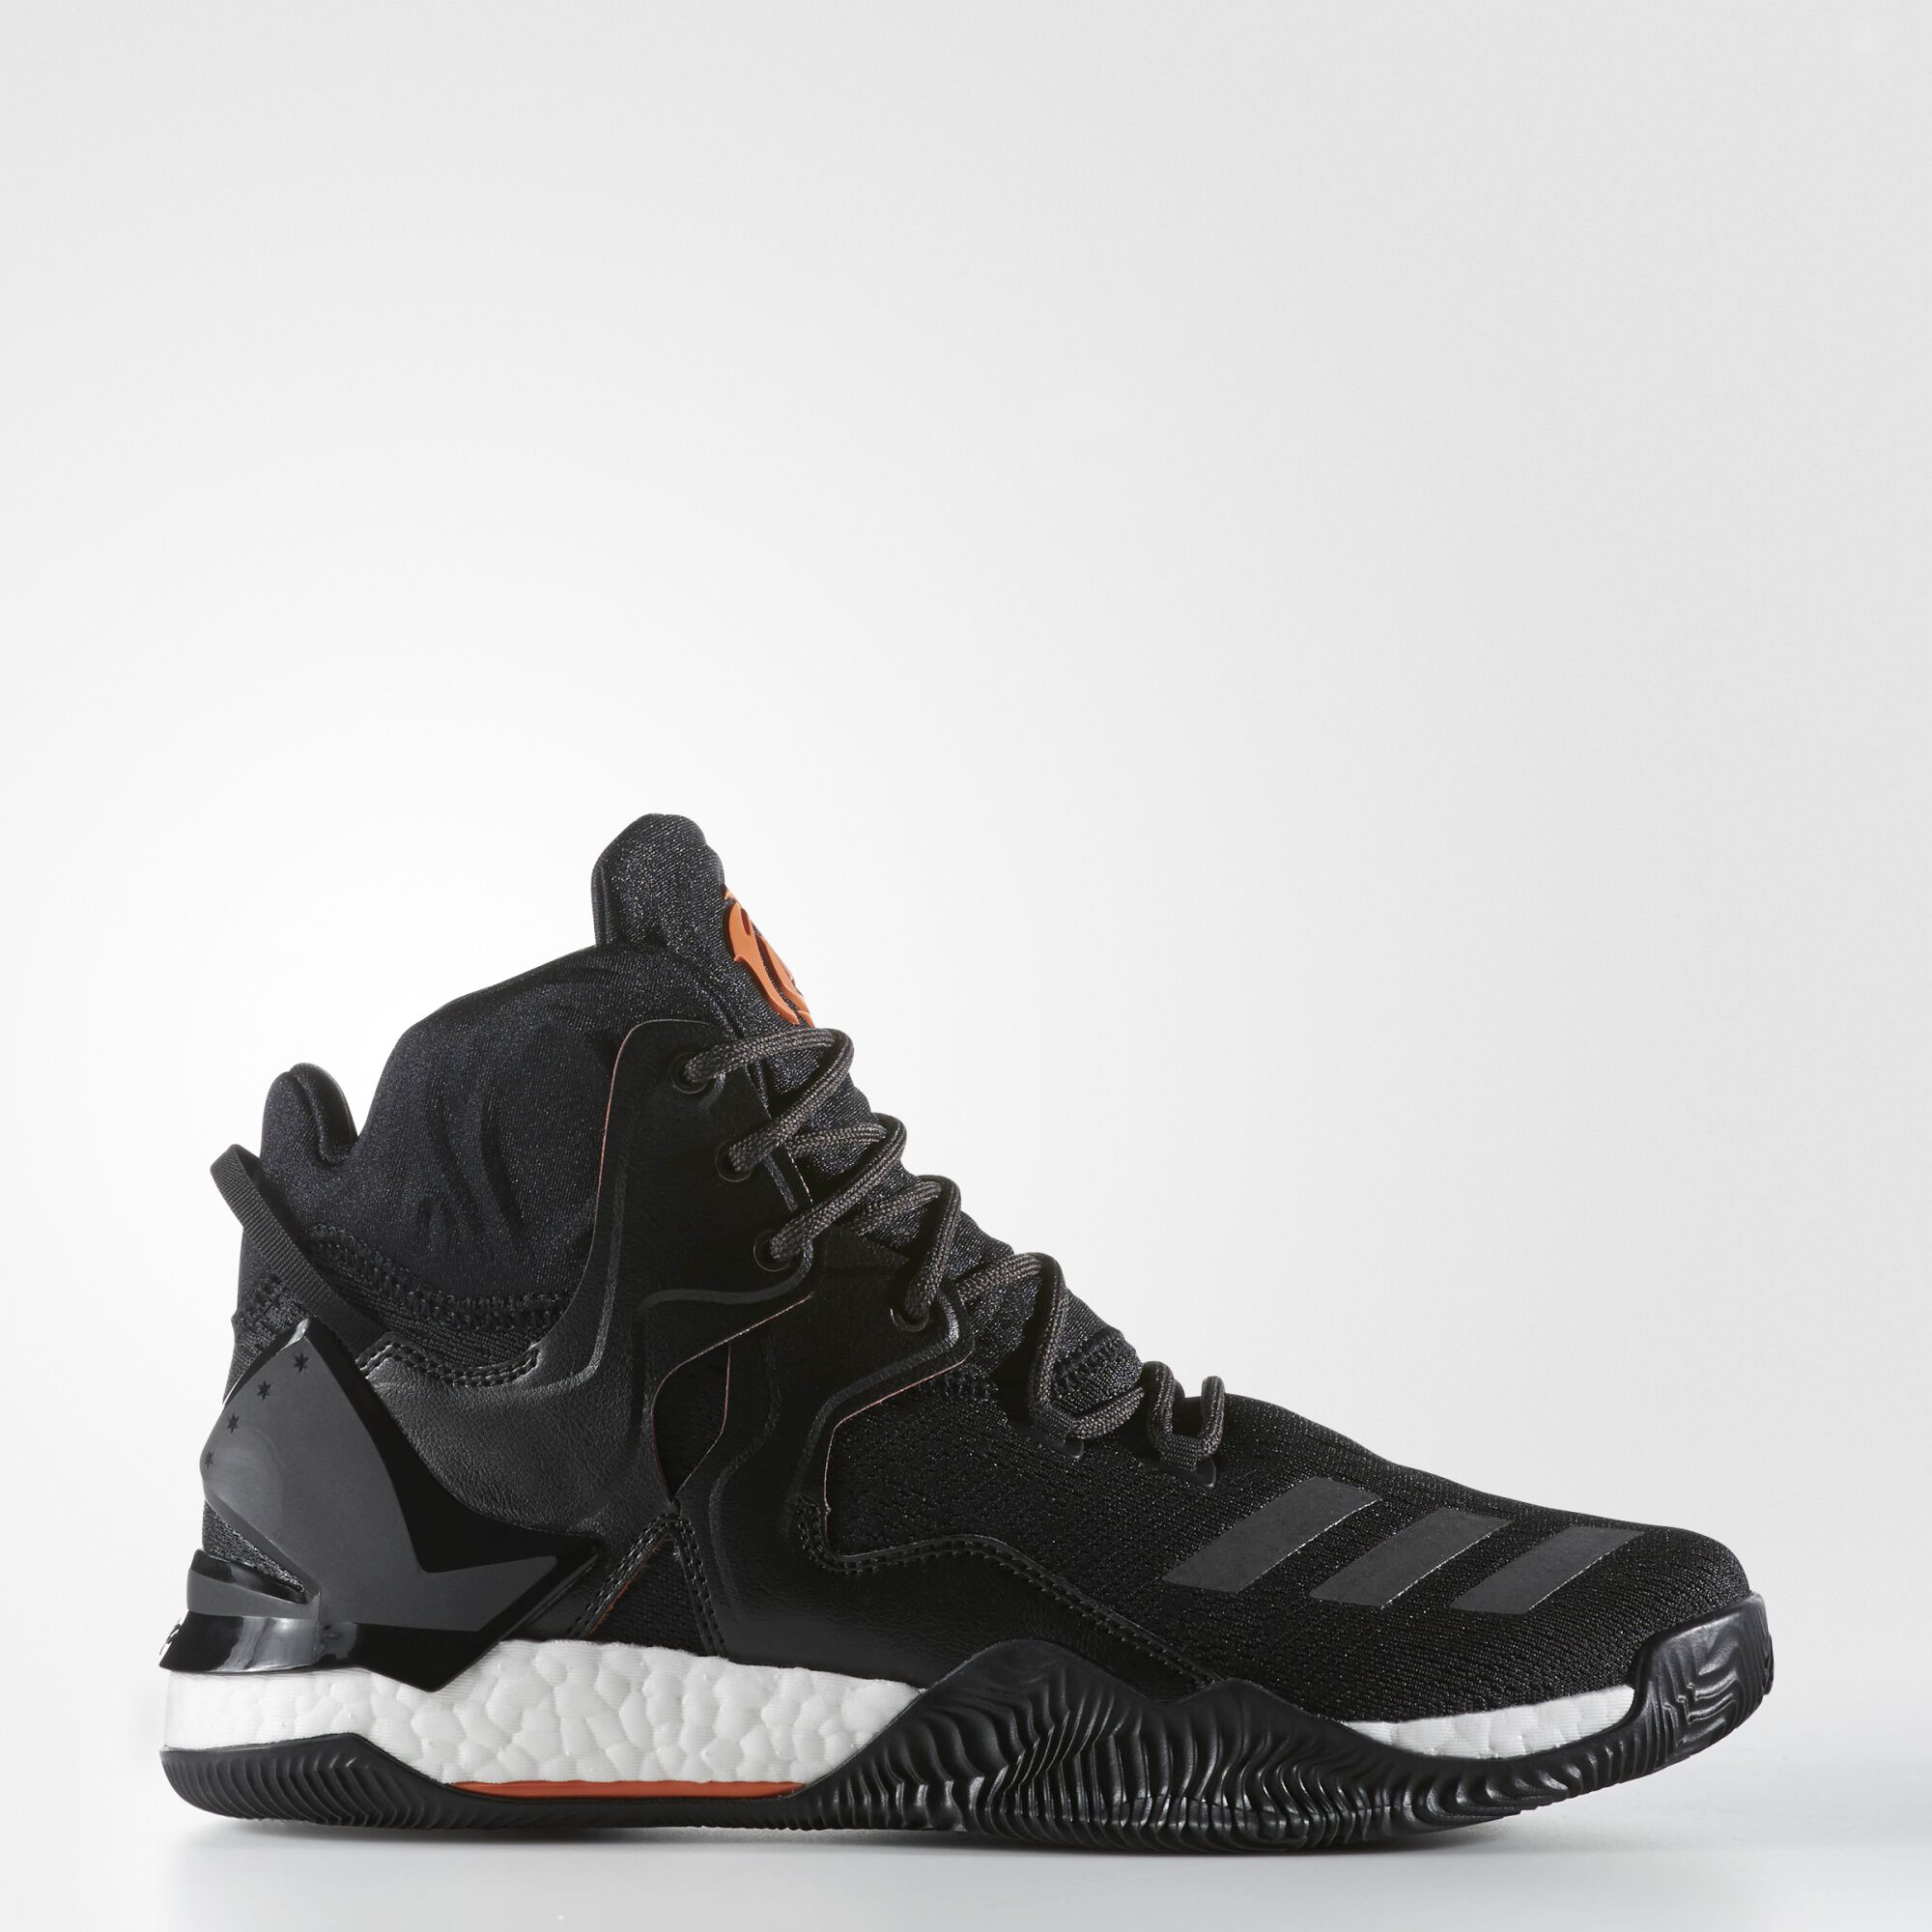 adidas basketball shoes with boost